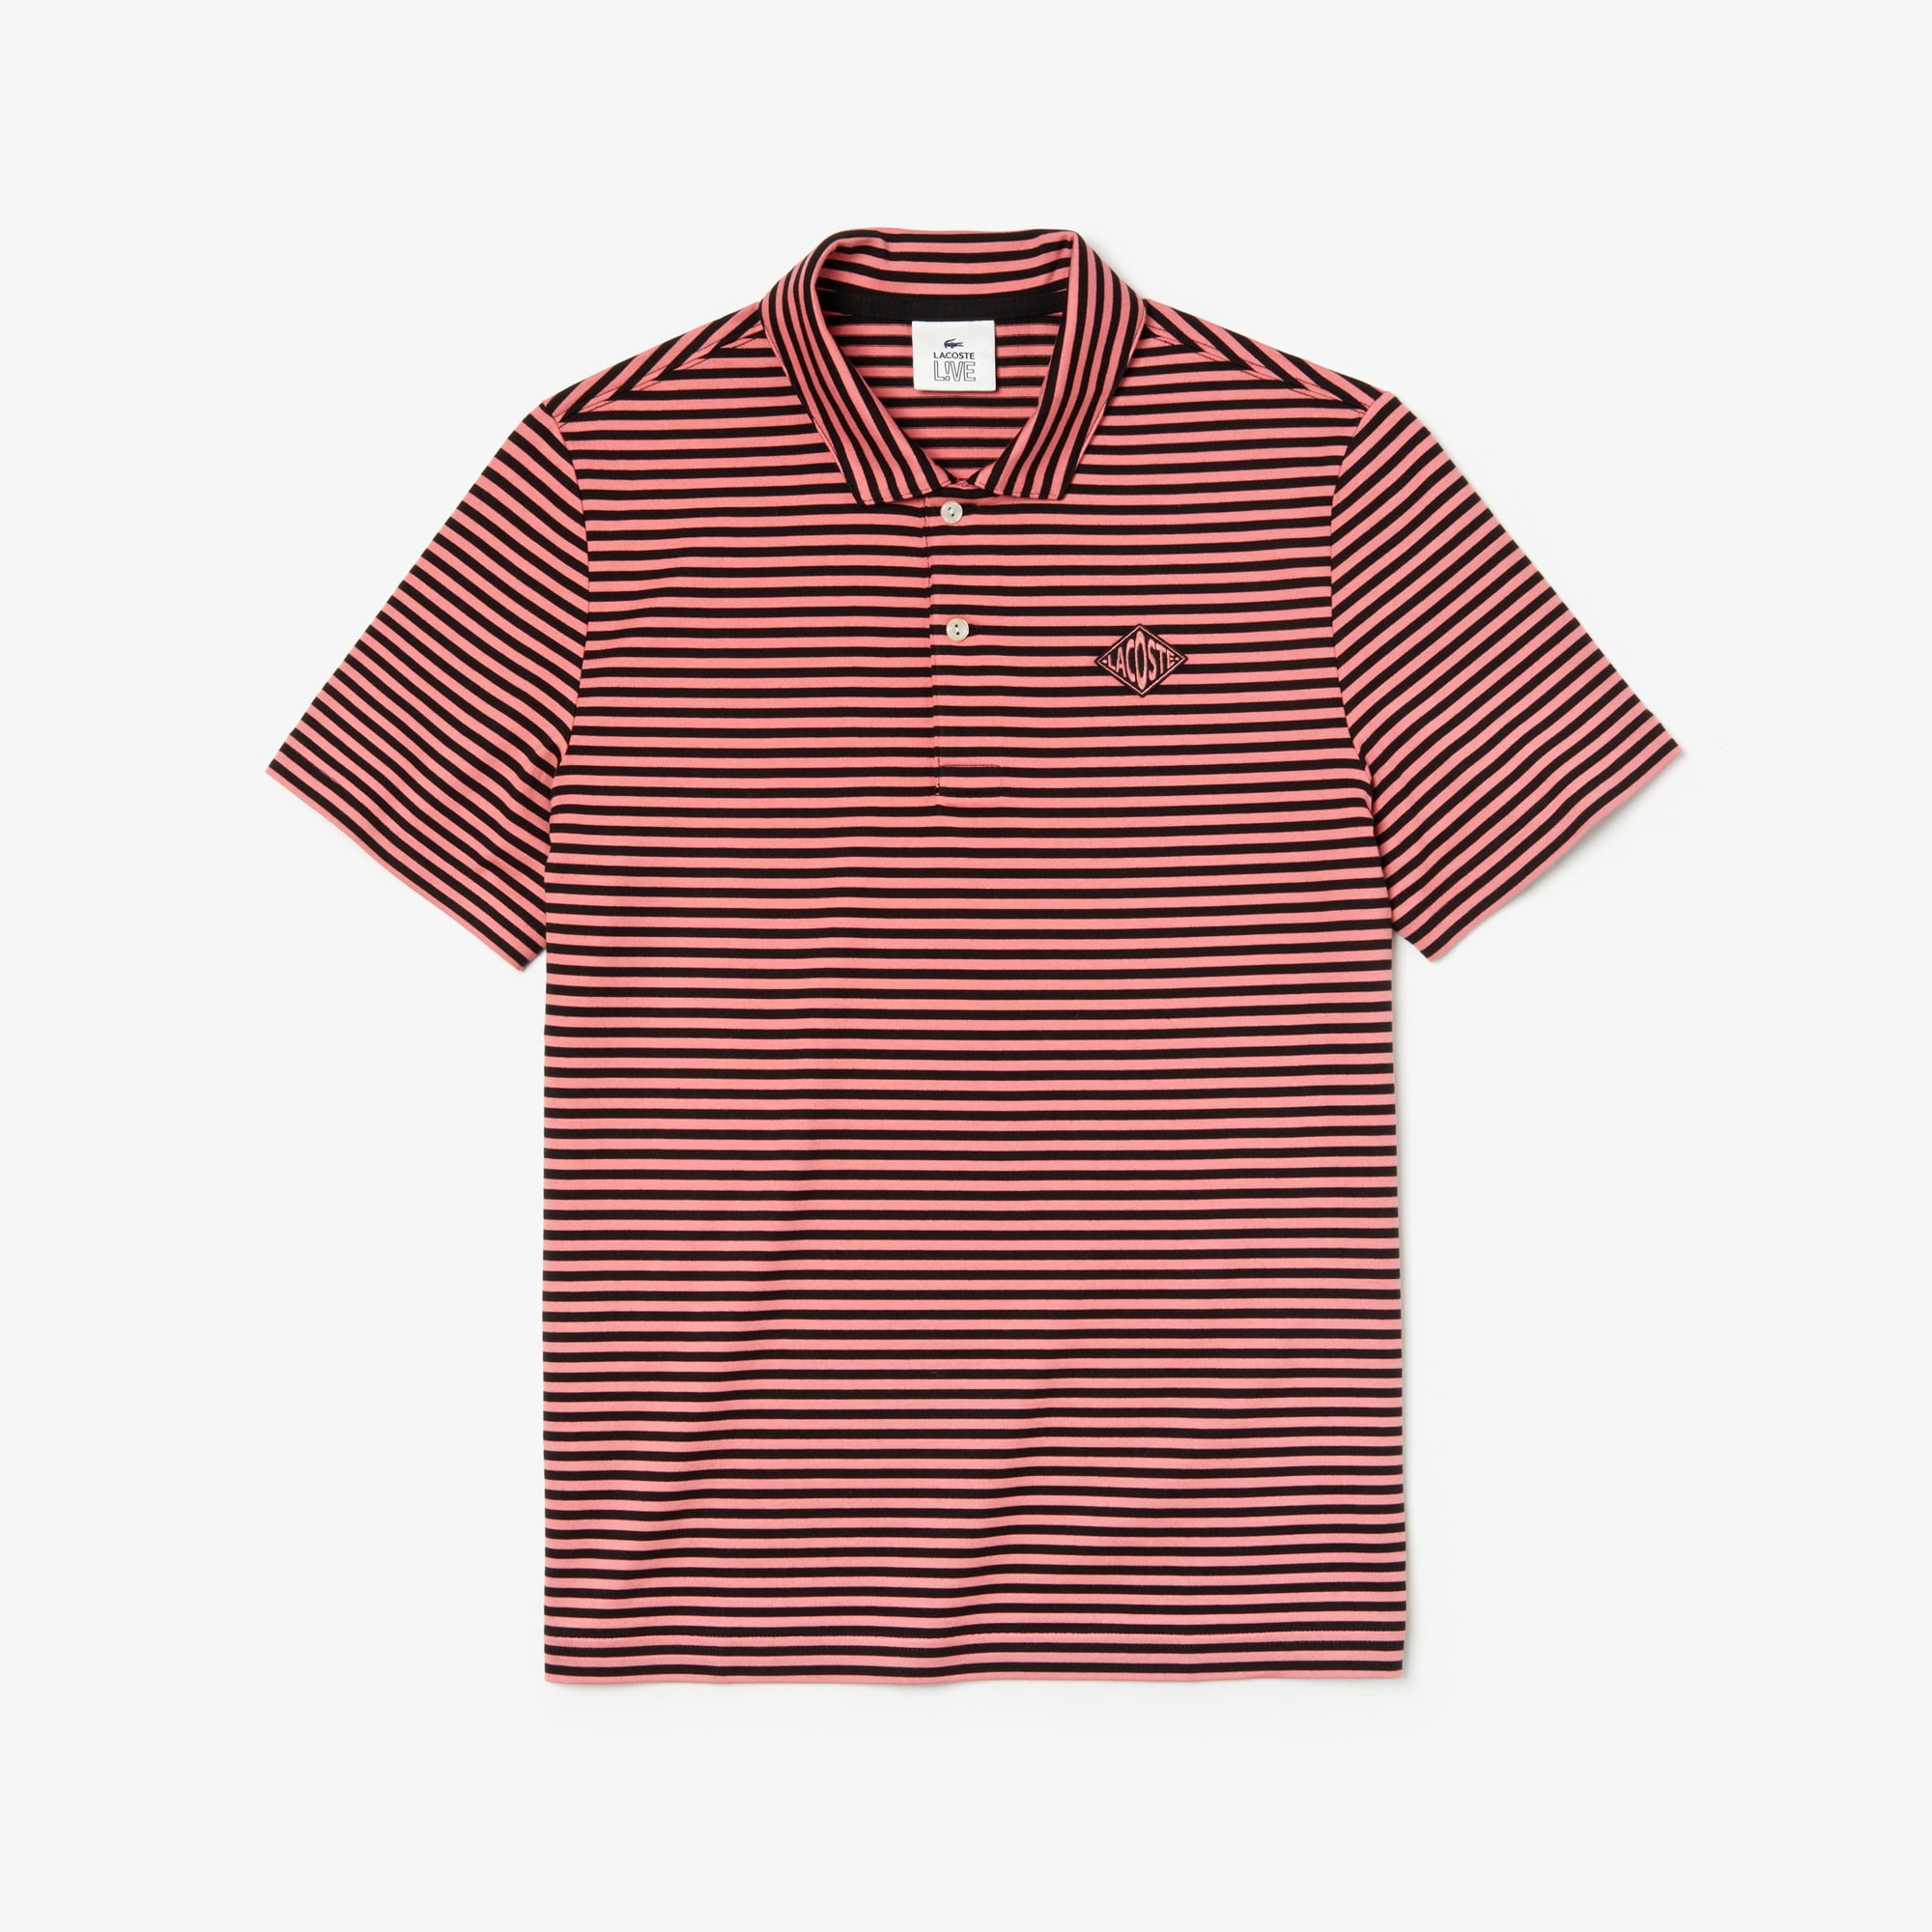 Men's Lacoste LIVE Regular Fit Diamond Badge Striped Cotton Polo Shirt